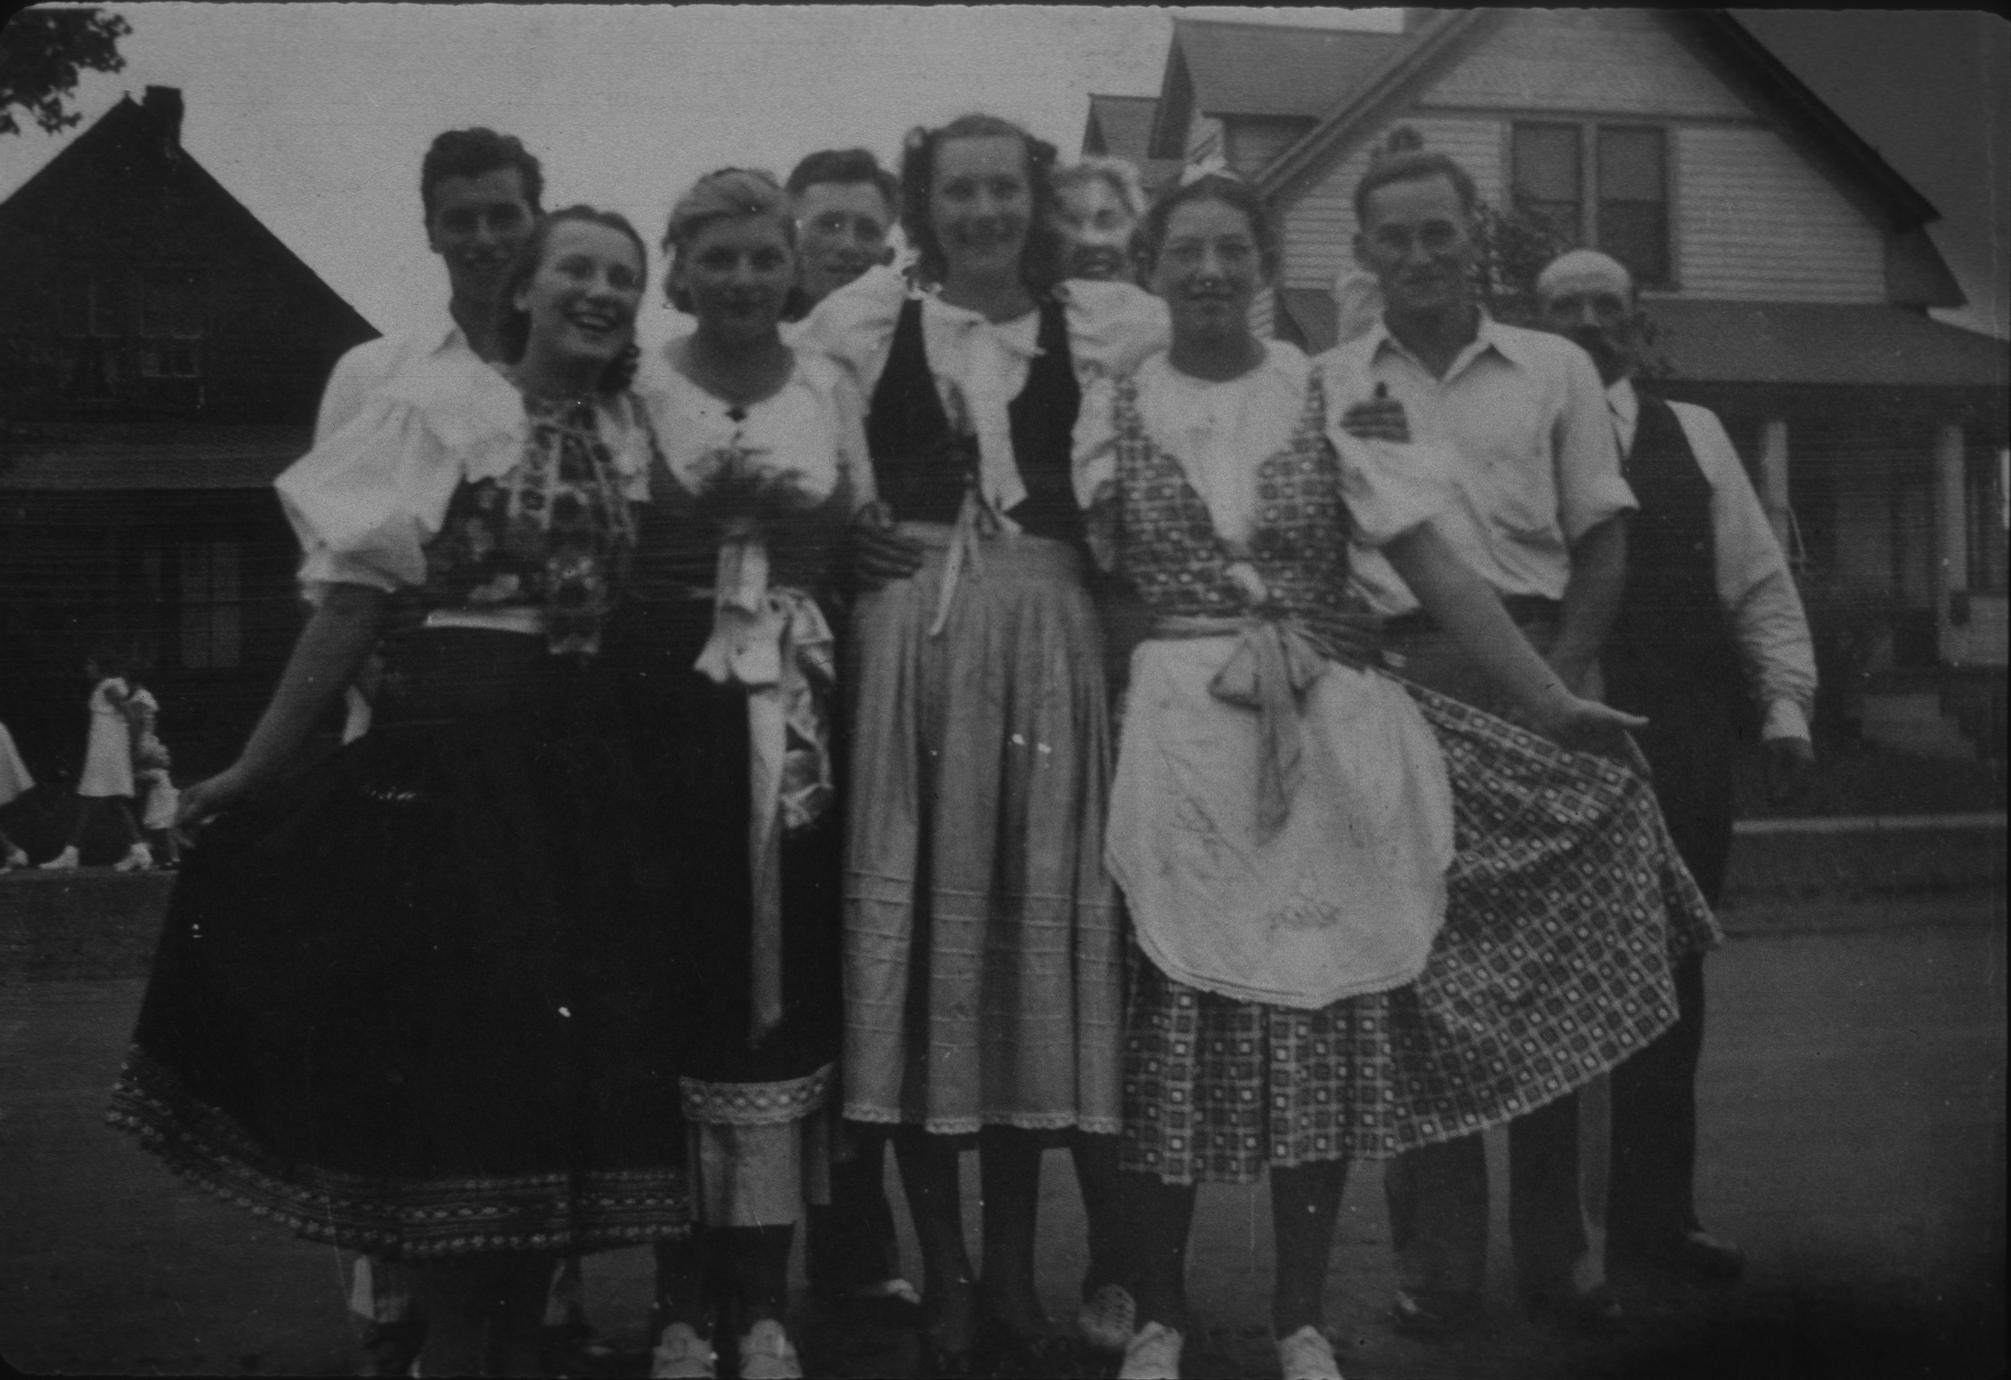 Moquah Slovak Dance Group